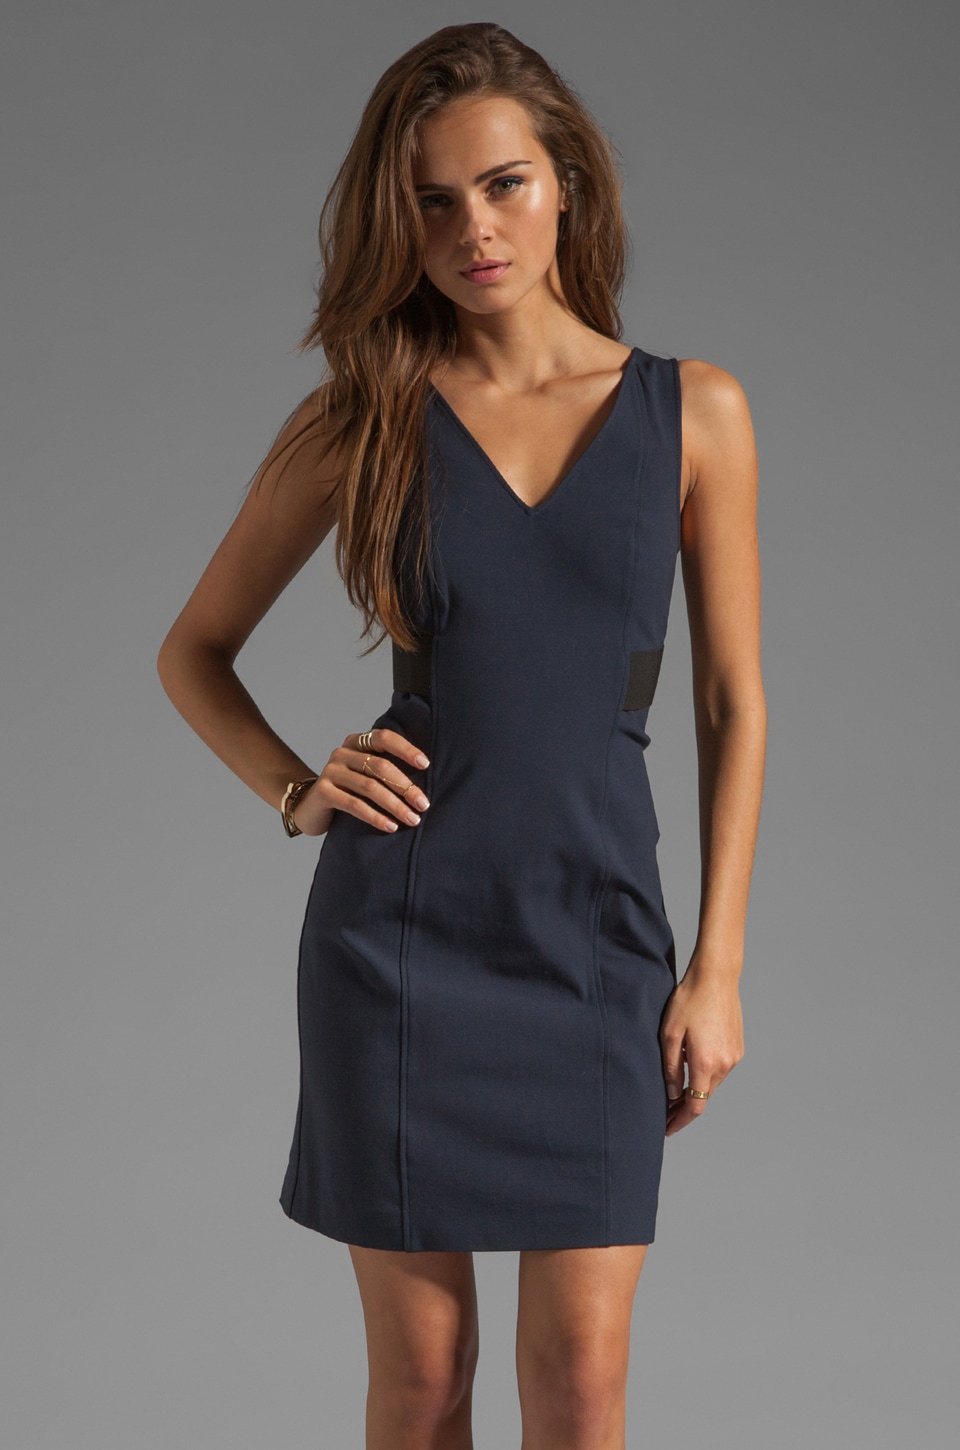 Theory New Recovery Quanda Nylon Bistretch Dress in Dark Navy